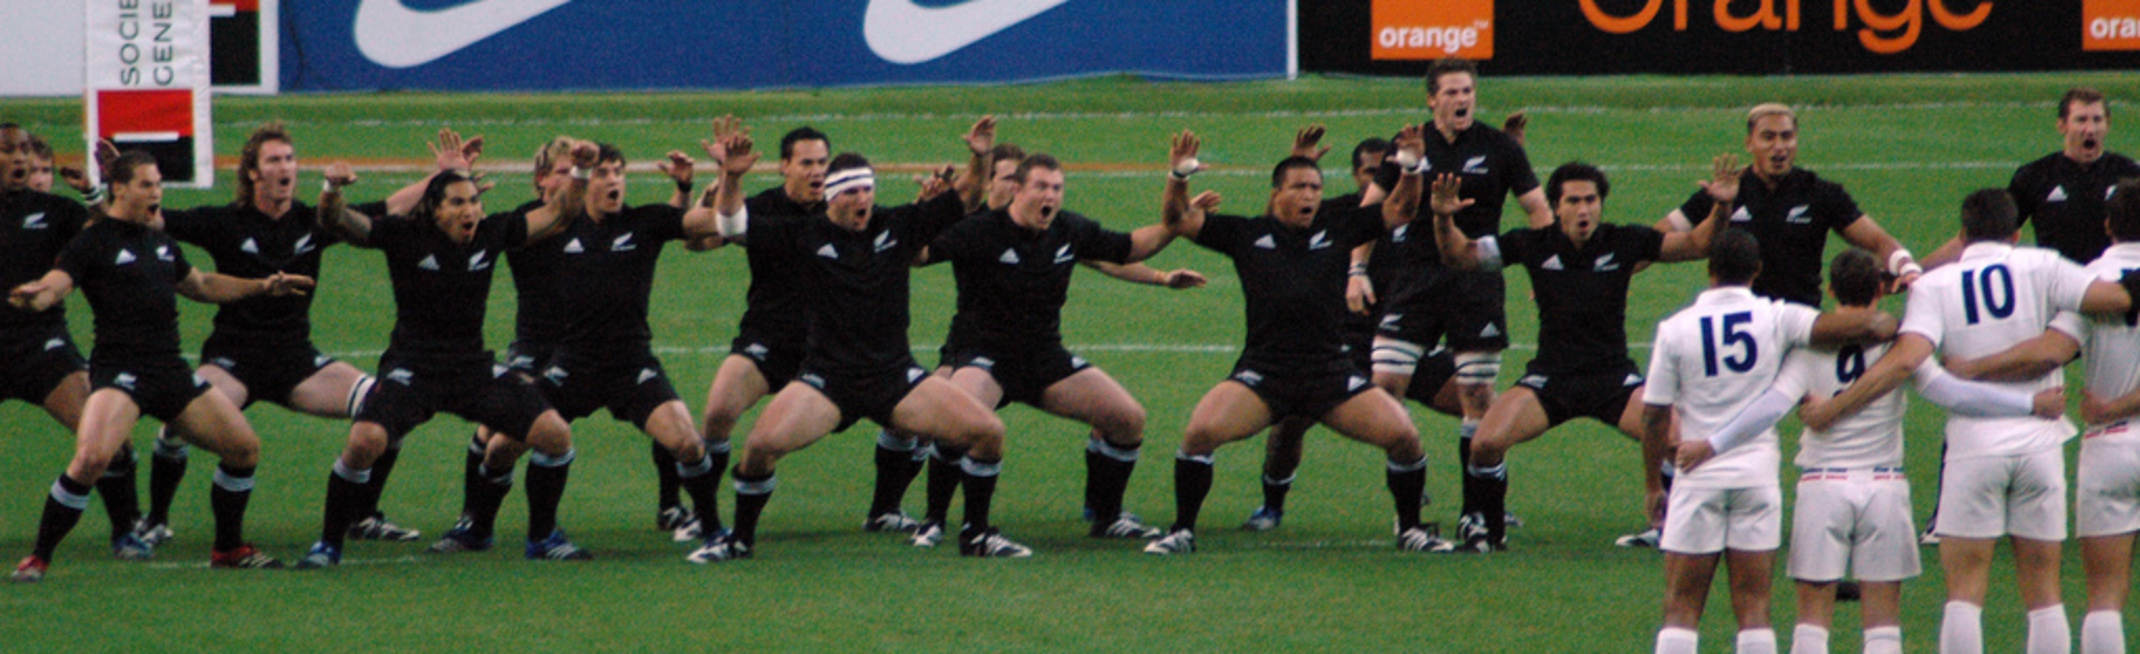 sports culture in new zealand rugby essay